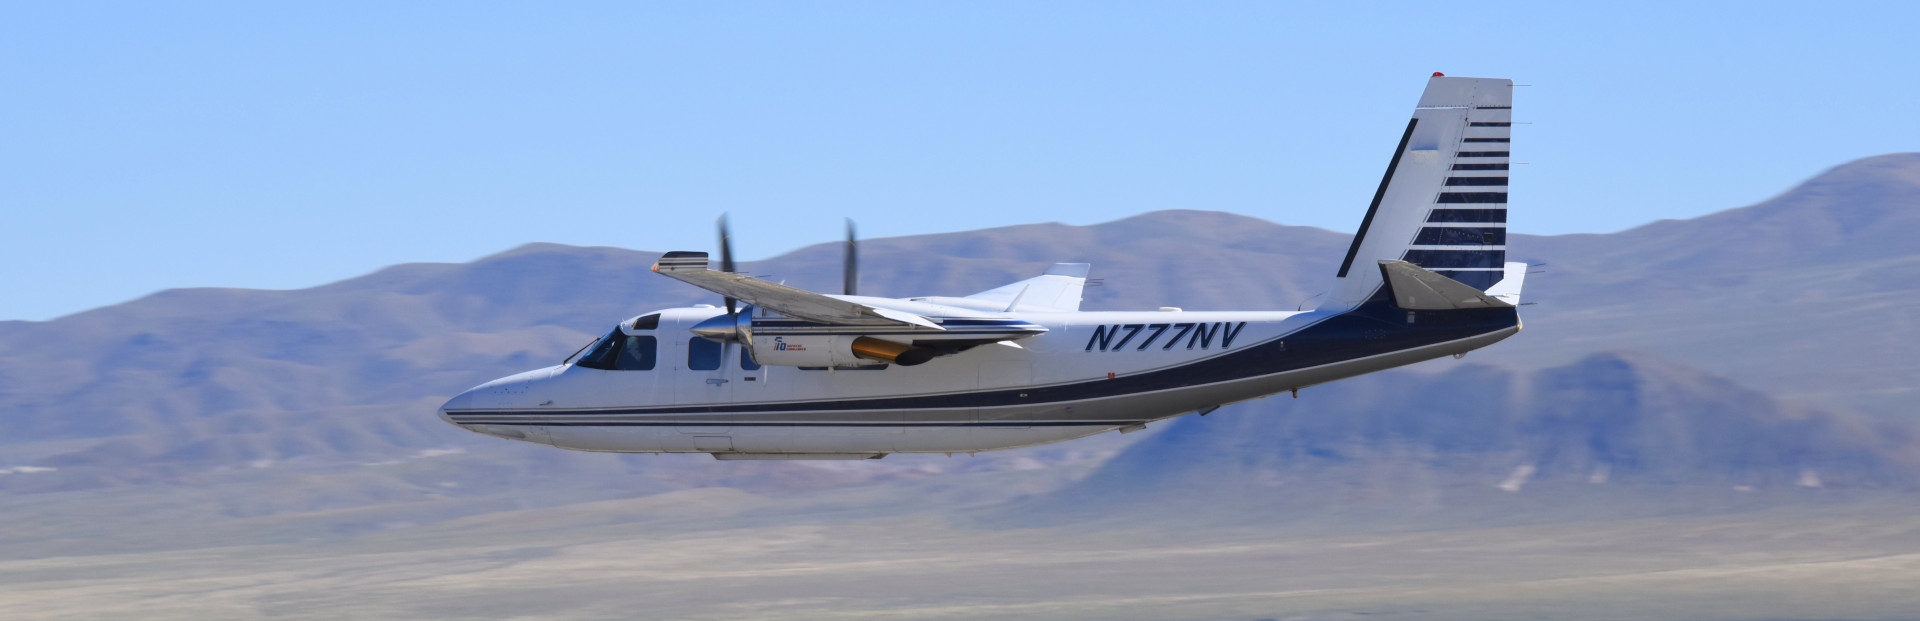 The Carson City Airport Capital Access And More Business View